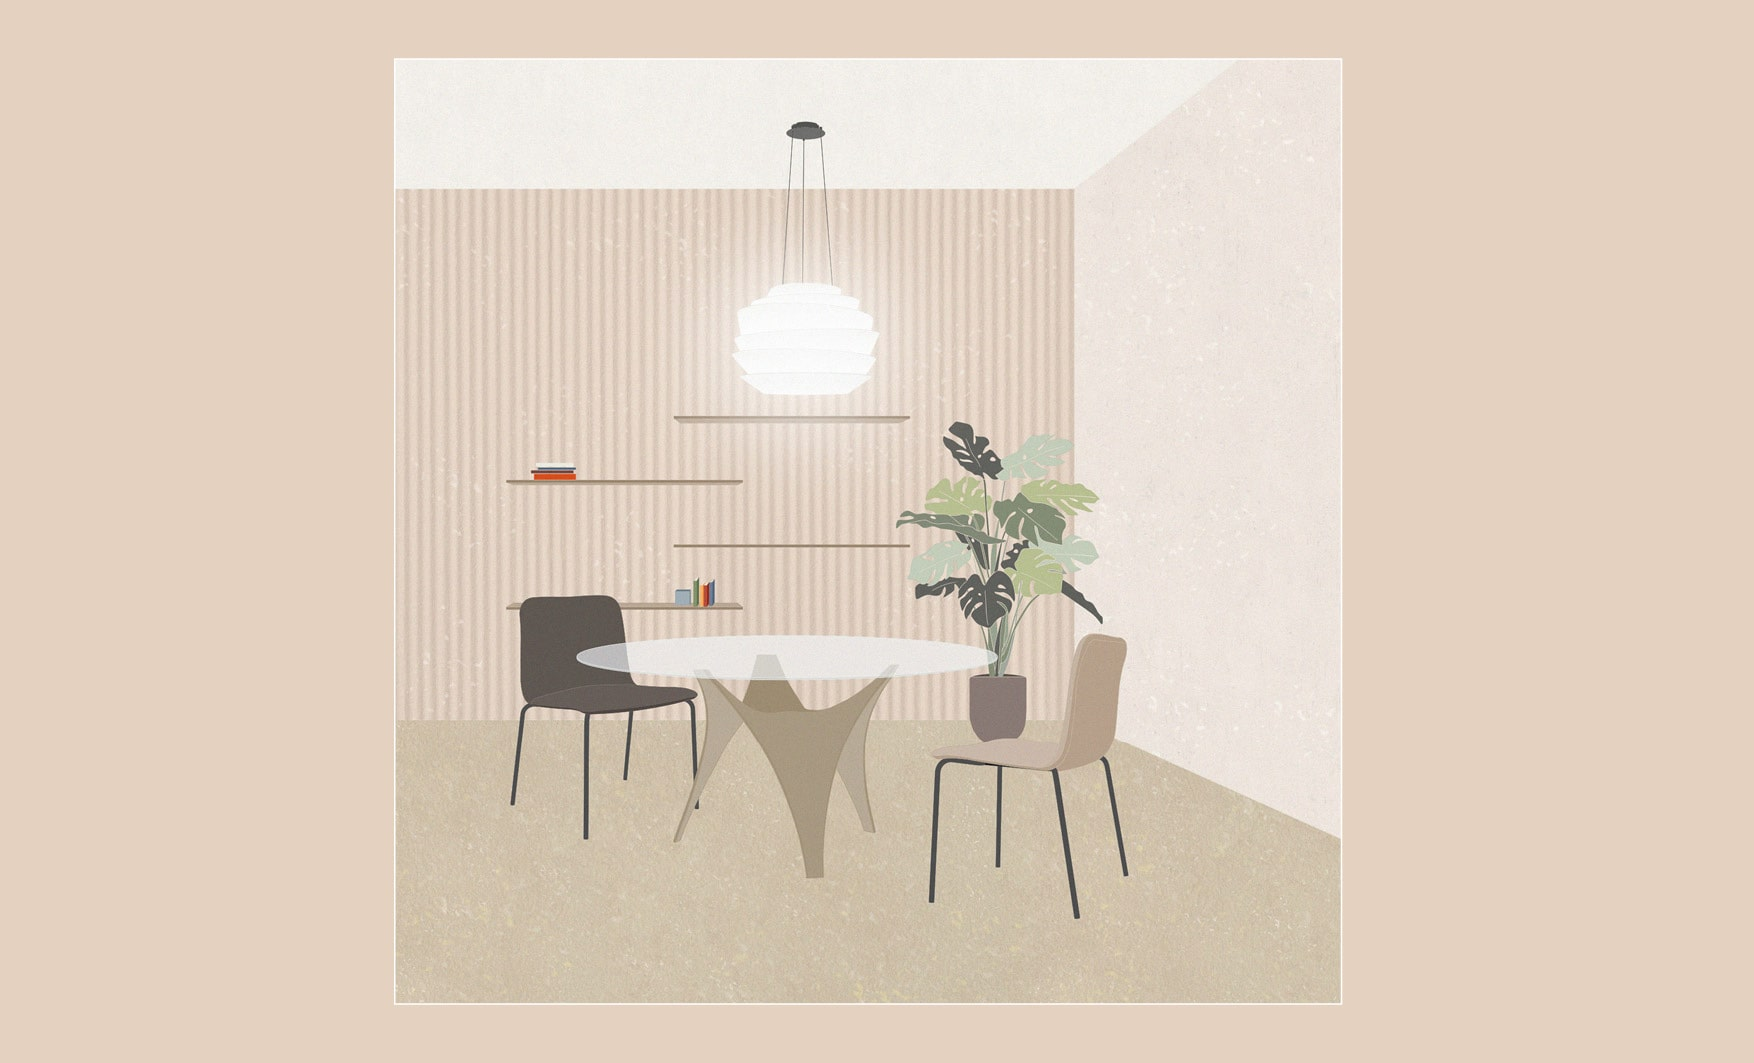 Molteni dining tables inspirations with Arc Table, Brianza Chairs by Arflex and Le Soleil Lamp by Foscarini. Illustration by Esperiri